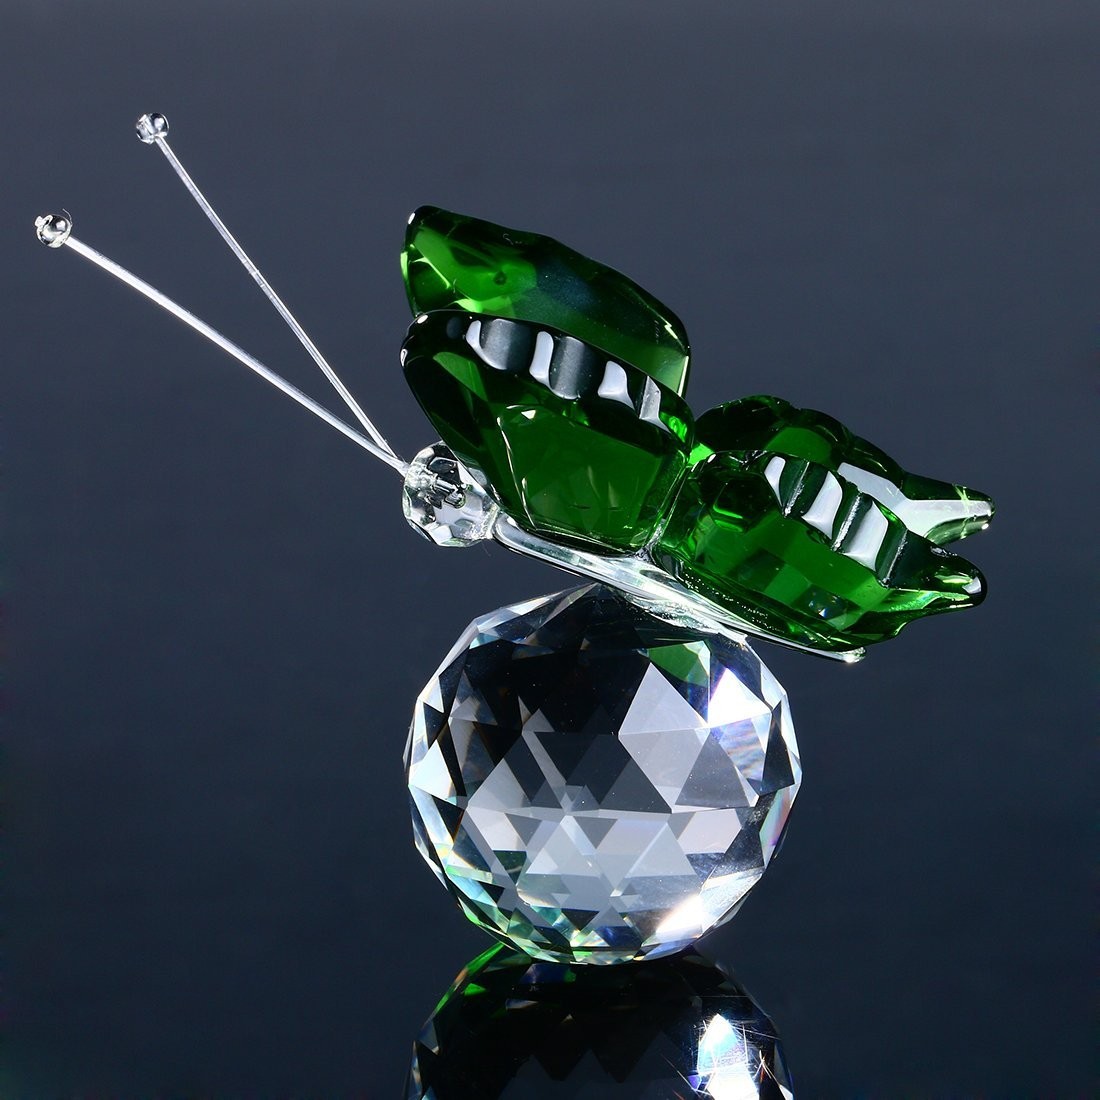 H&D Crystal Flying Butterfly with Crystal Ball Base Figurine Collection Cut Glass Ornament Statue Animal Collectible (green)